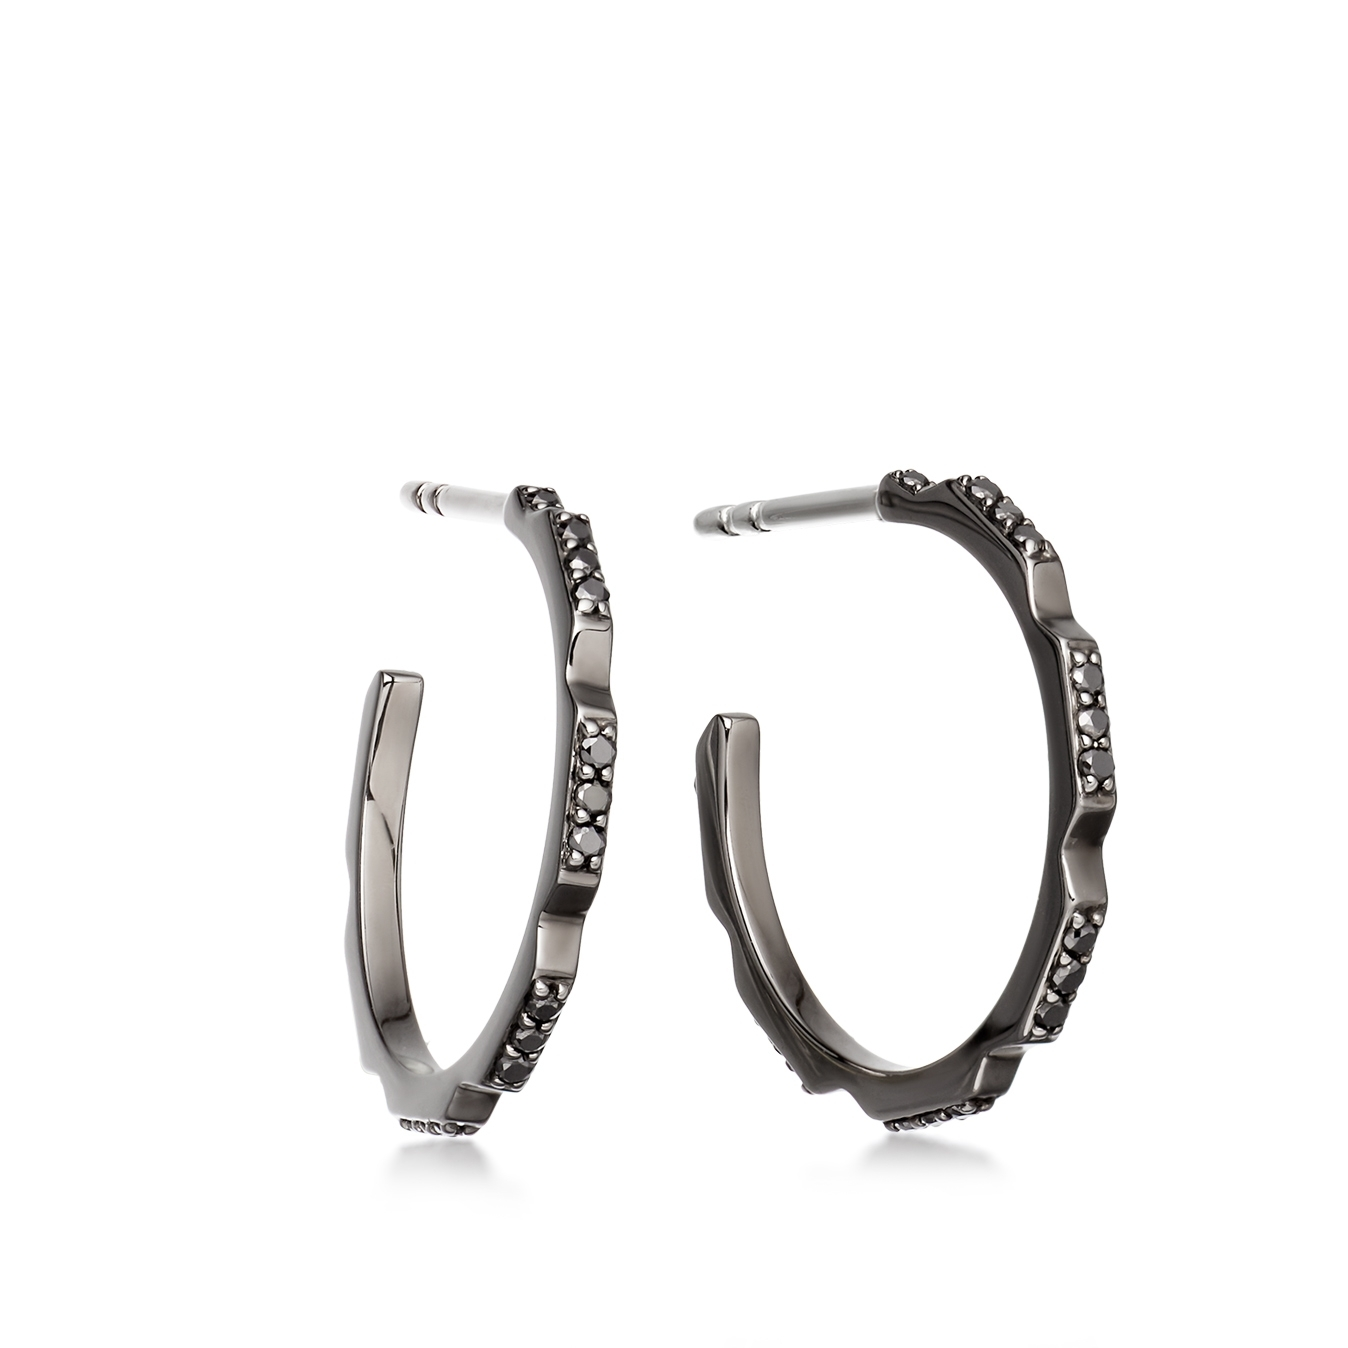 Aubar Black Diamond Hoop Earrings